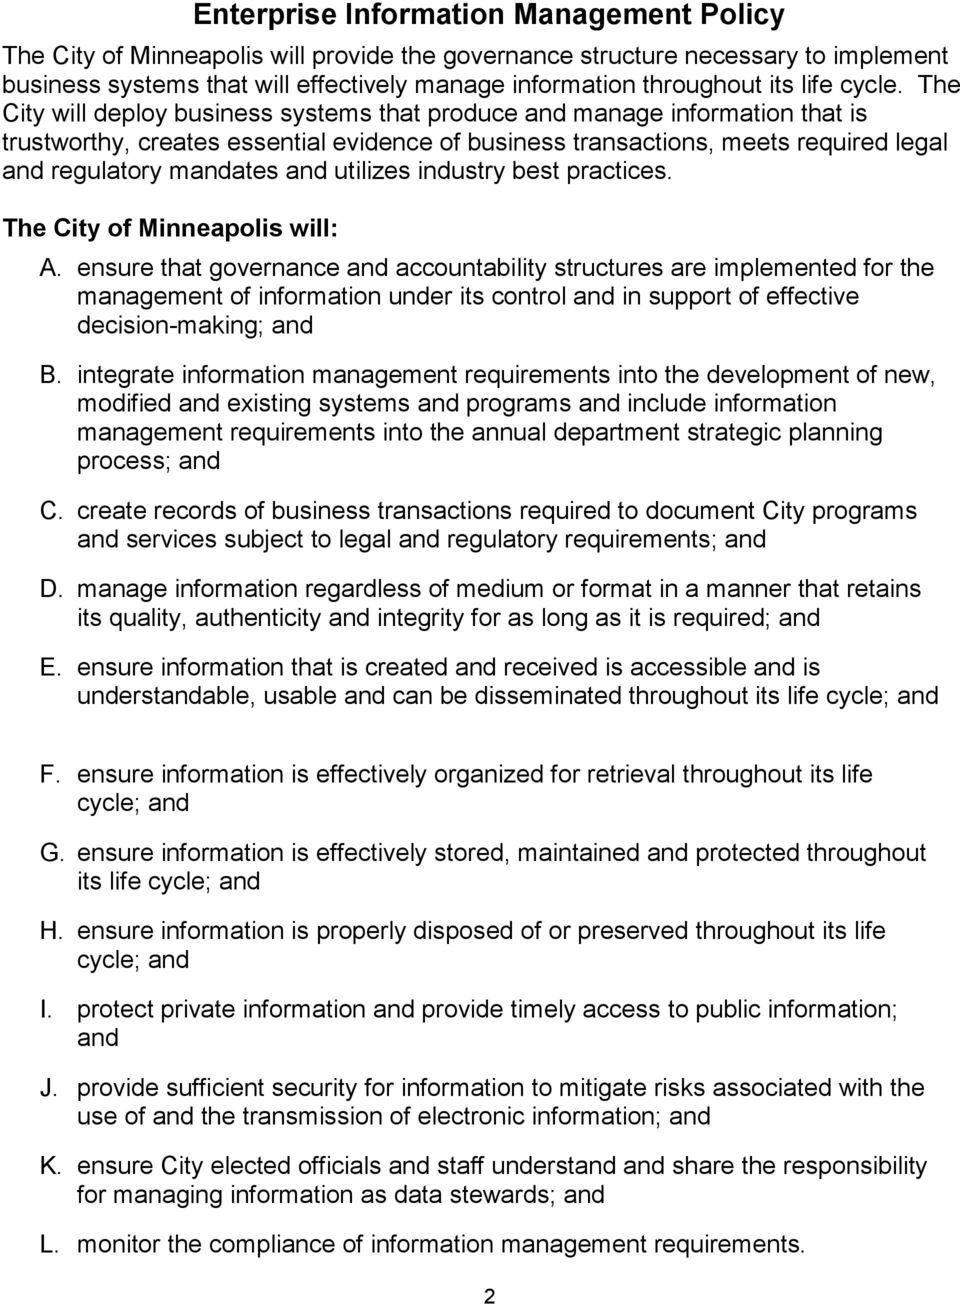 The City will deploy business systems that produce and manage information that is trustworthy, creates essential evidence of business transactions, meets required legal and regulatory mandates and